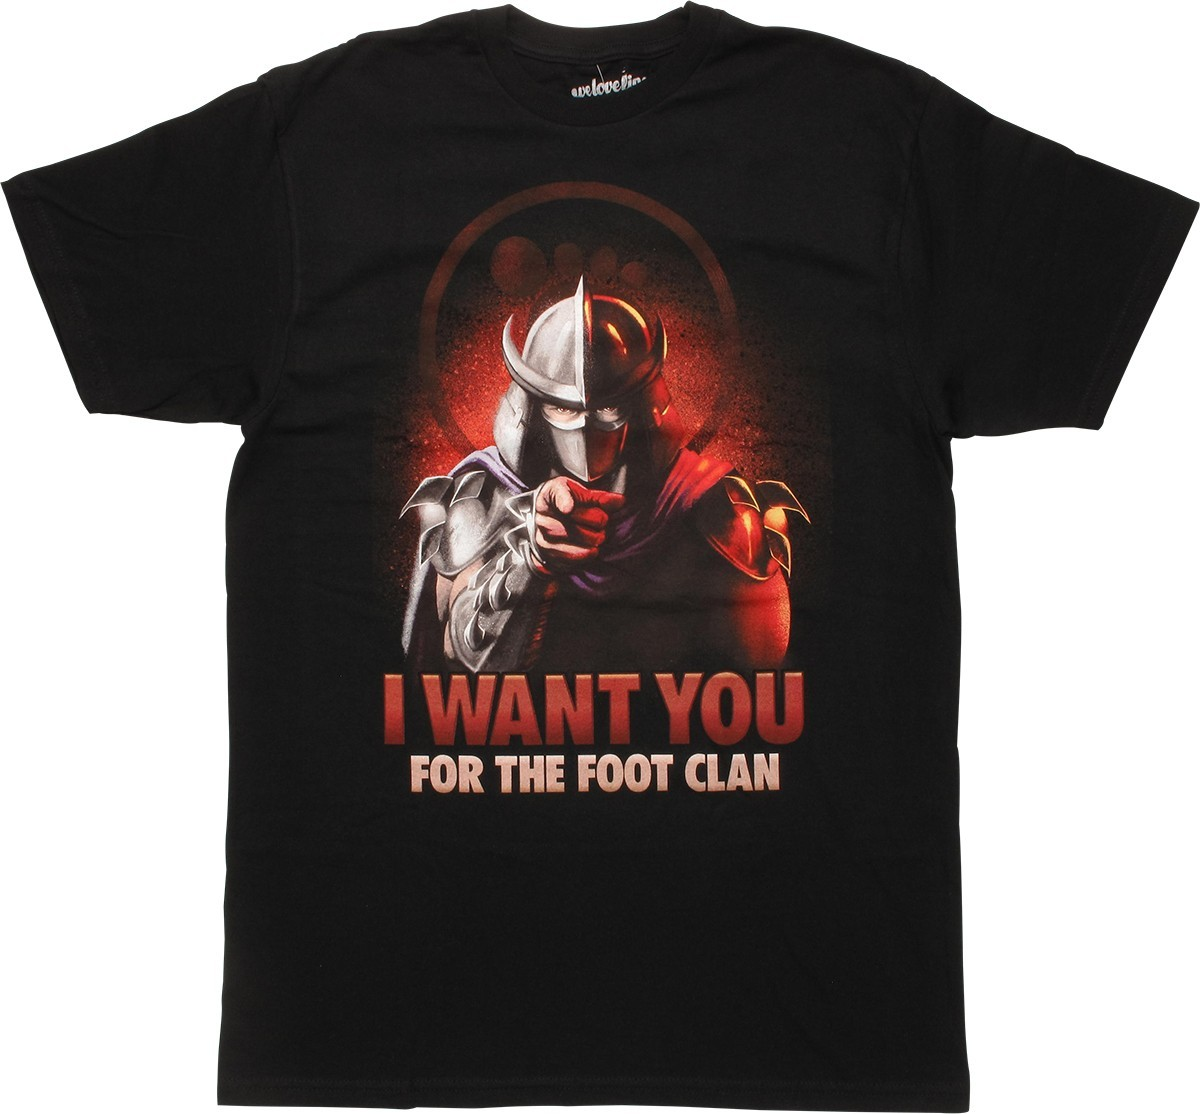 Teenage Mutant Ninja Turtles Shredder I Want You for the Foot Clan T-Shirt Small